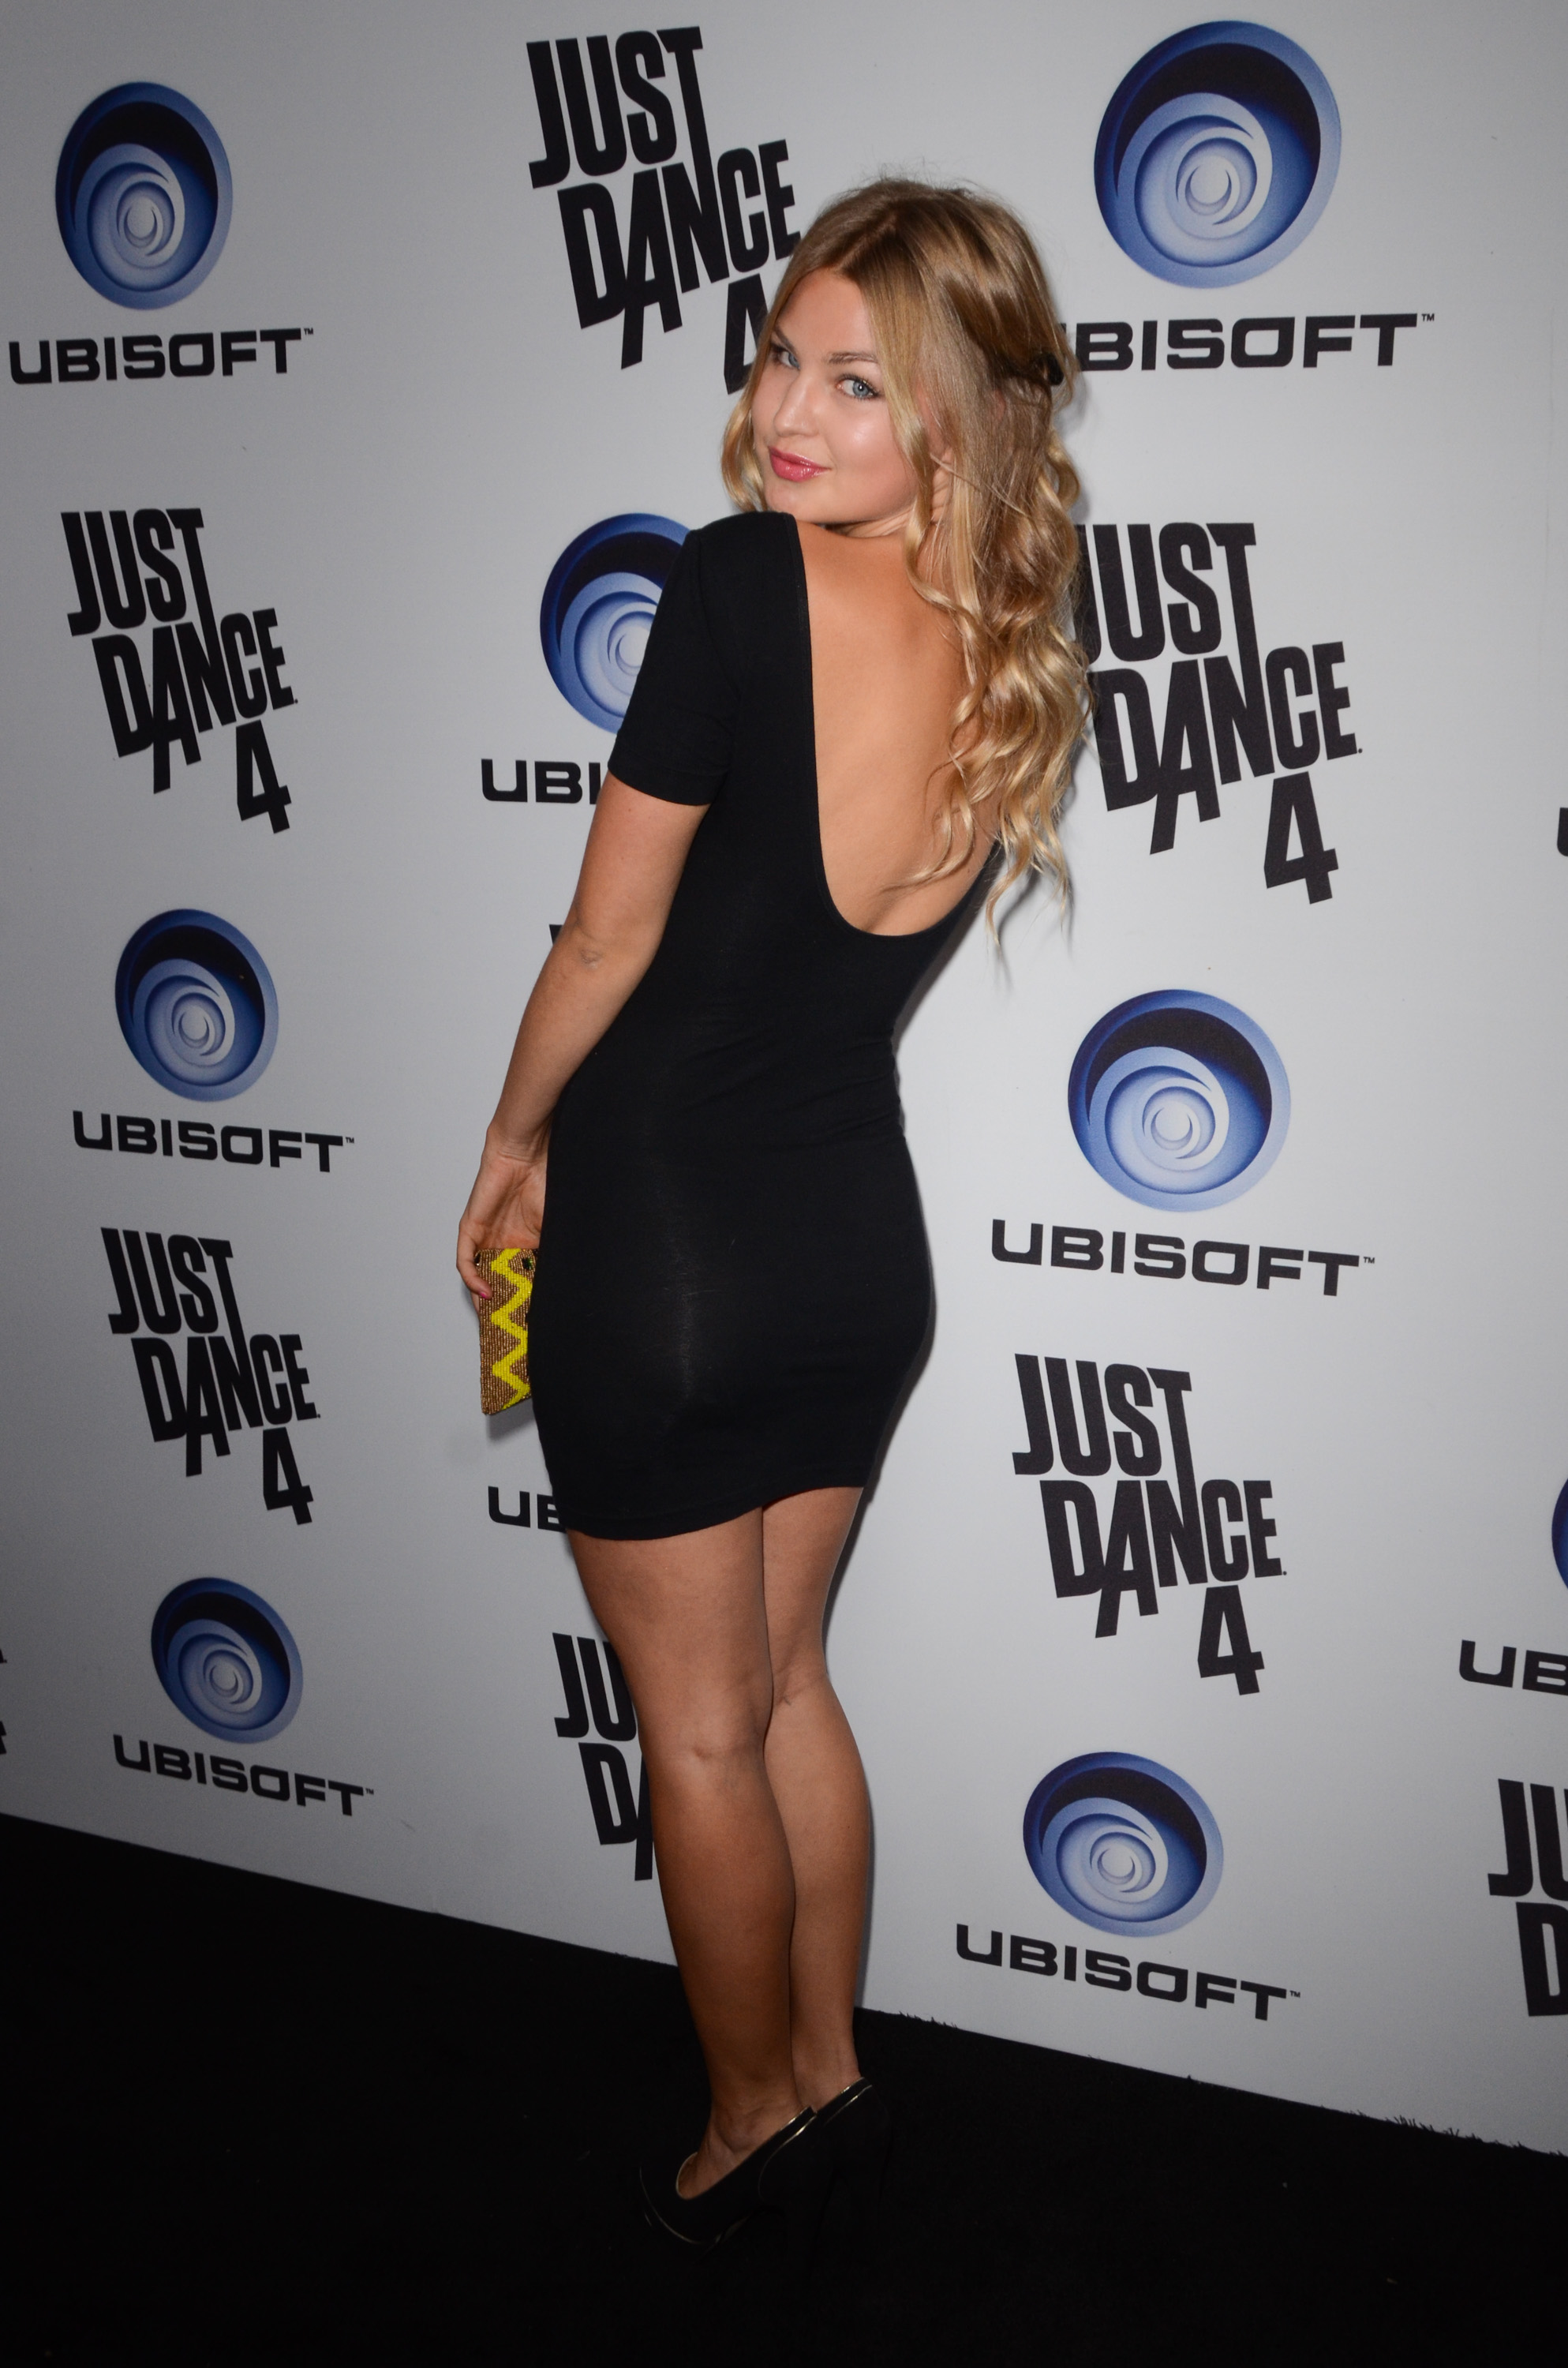 312556993_JenniferAkerman_JustDance4Launch_13_122_351lo.jpg